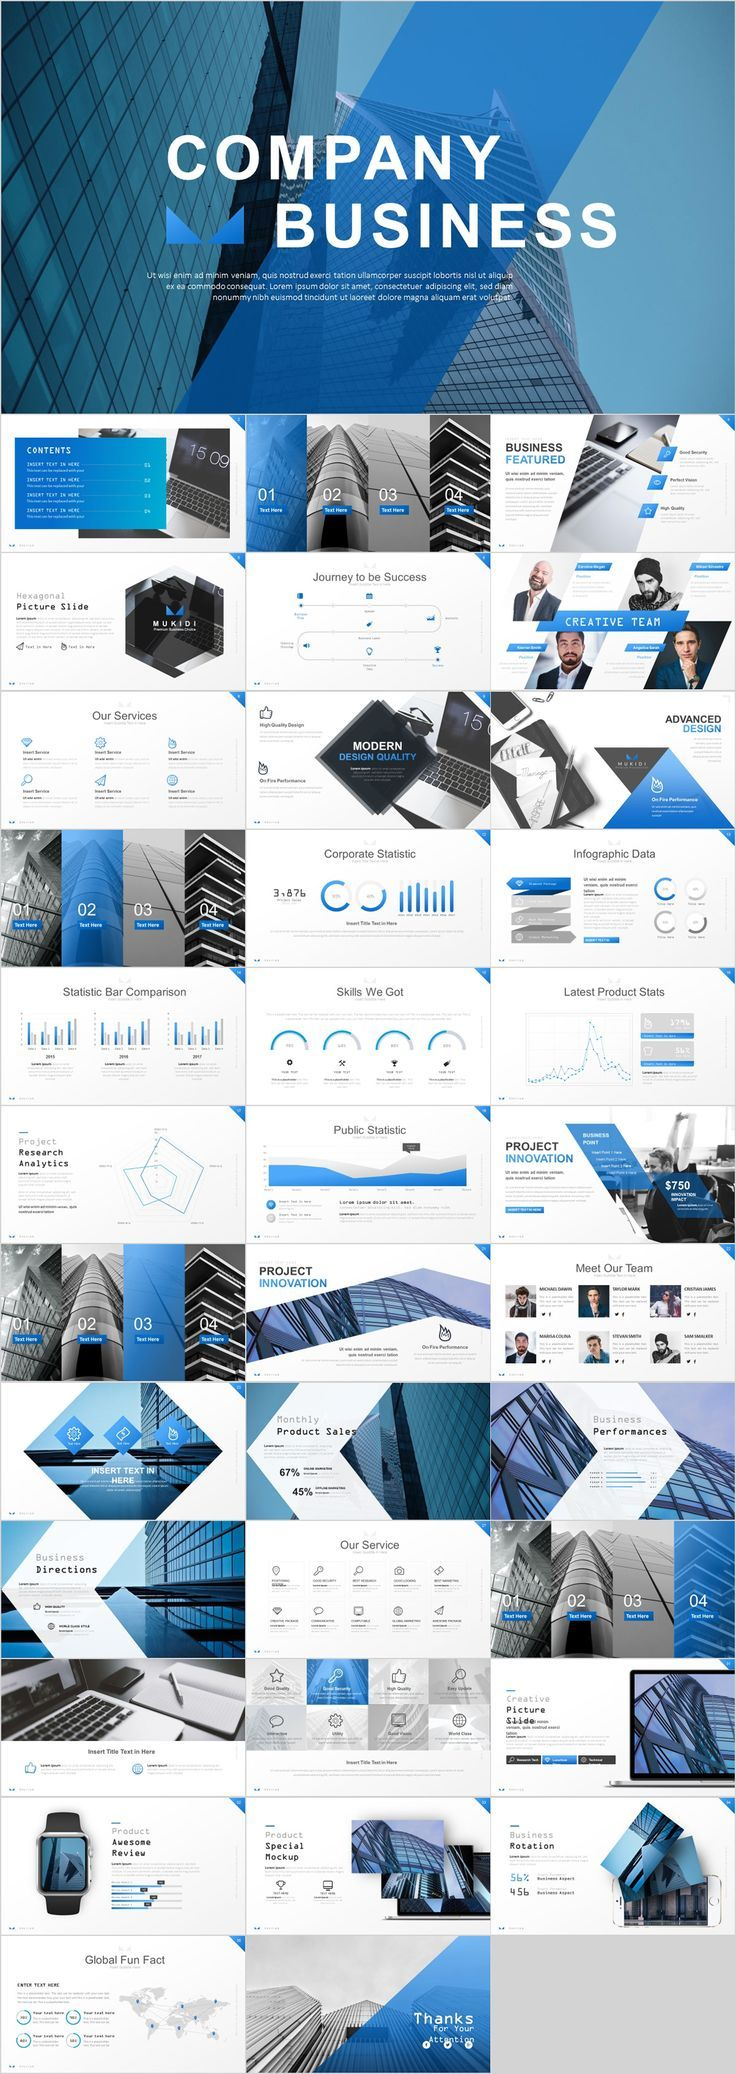 36 Best Company Business Blue Powerpoint Templates On Behance Powerpoint Templates Ideas Of Powerpo Powerpoint Vorlagen Power Point Powerpoint Prasentation